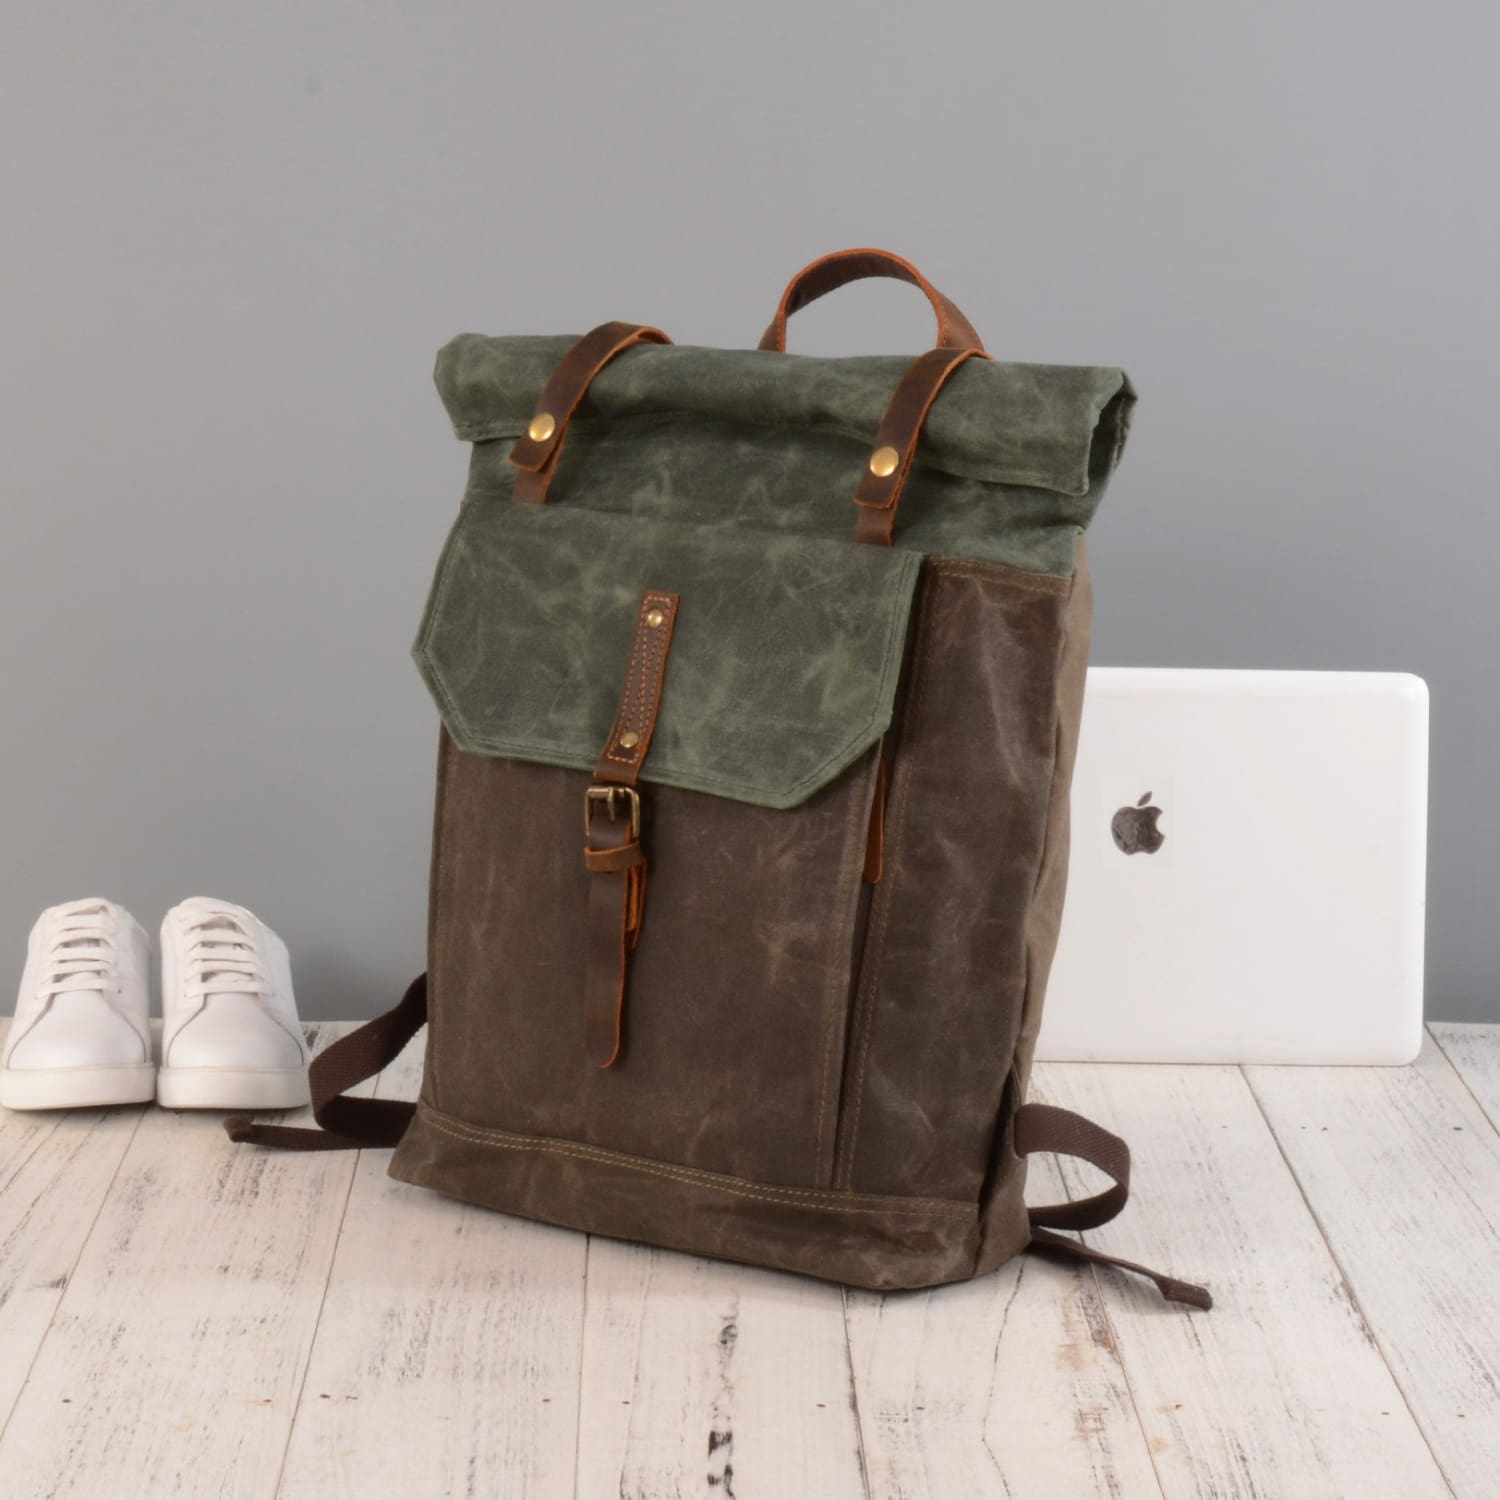 Waxed Canvas Roll-Top Backpack in Deep Green image 8bf59162e6827